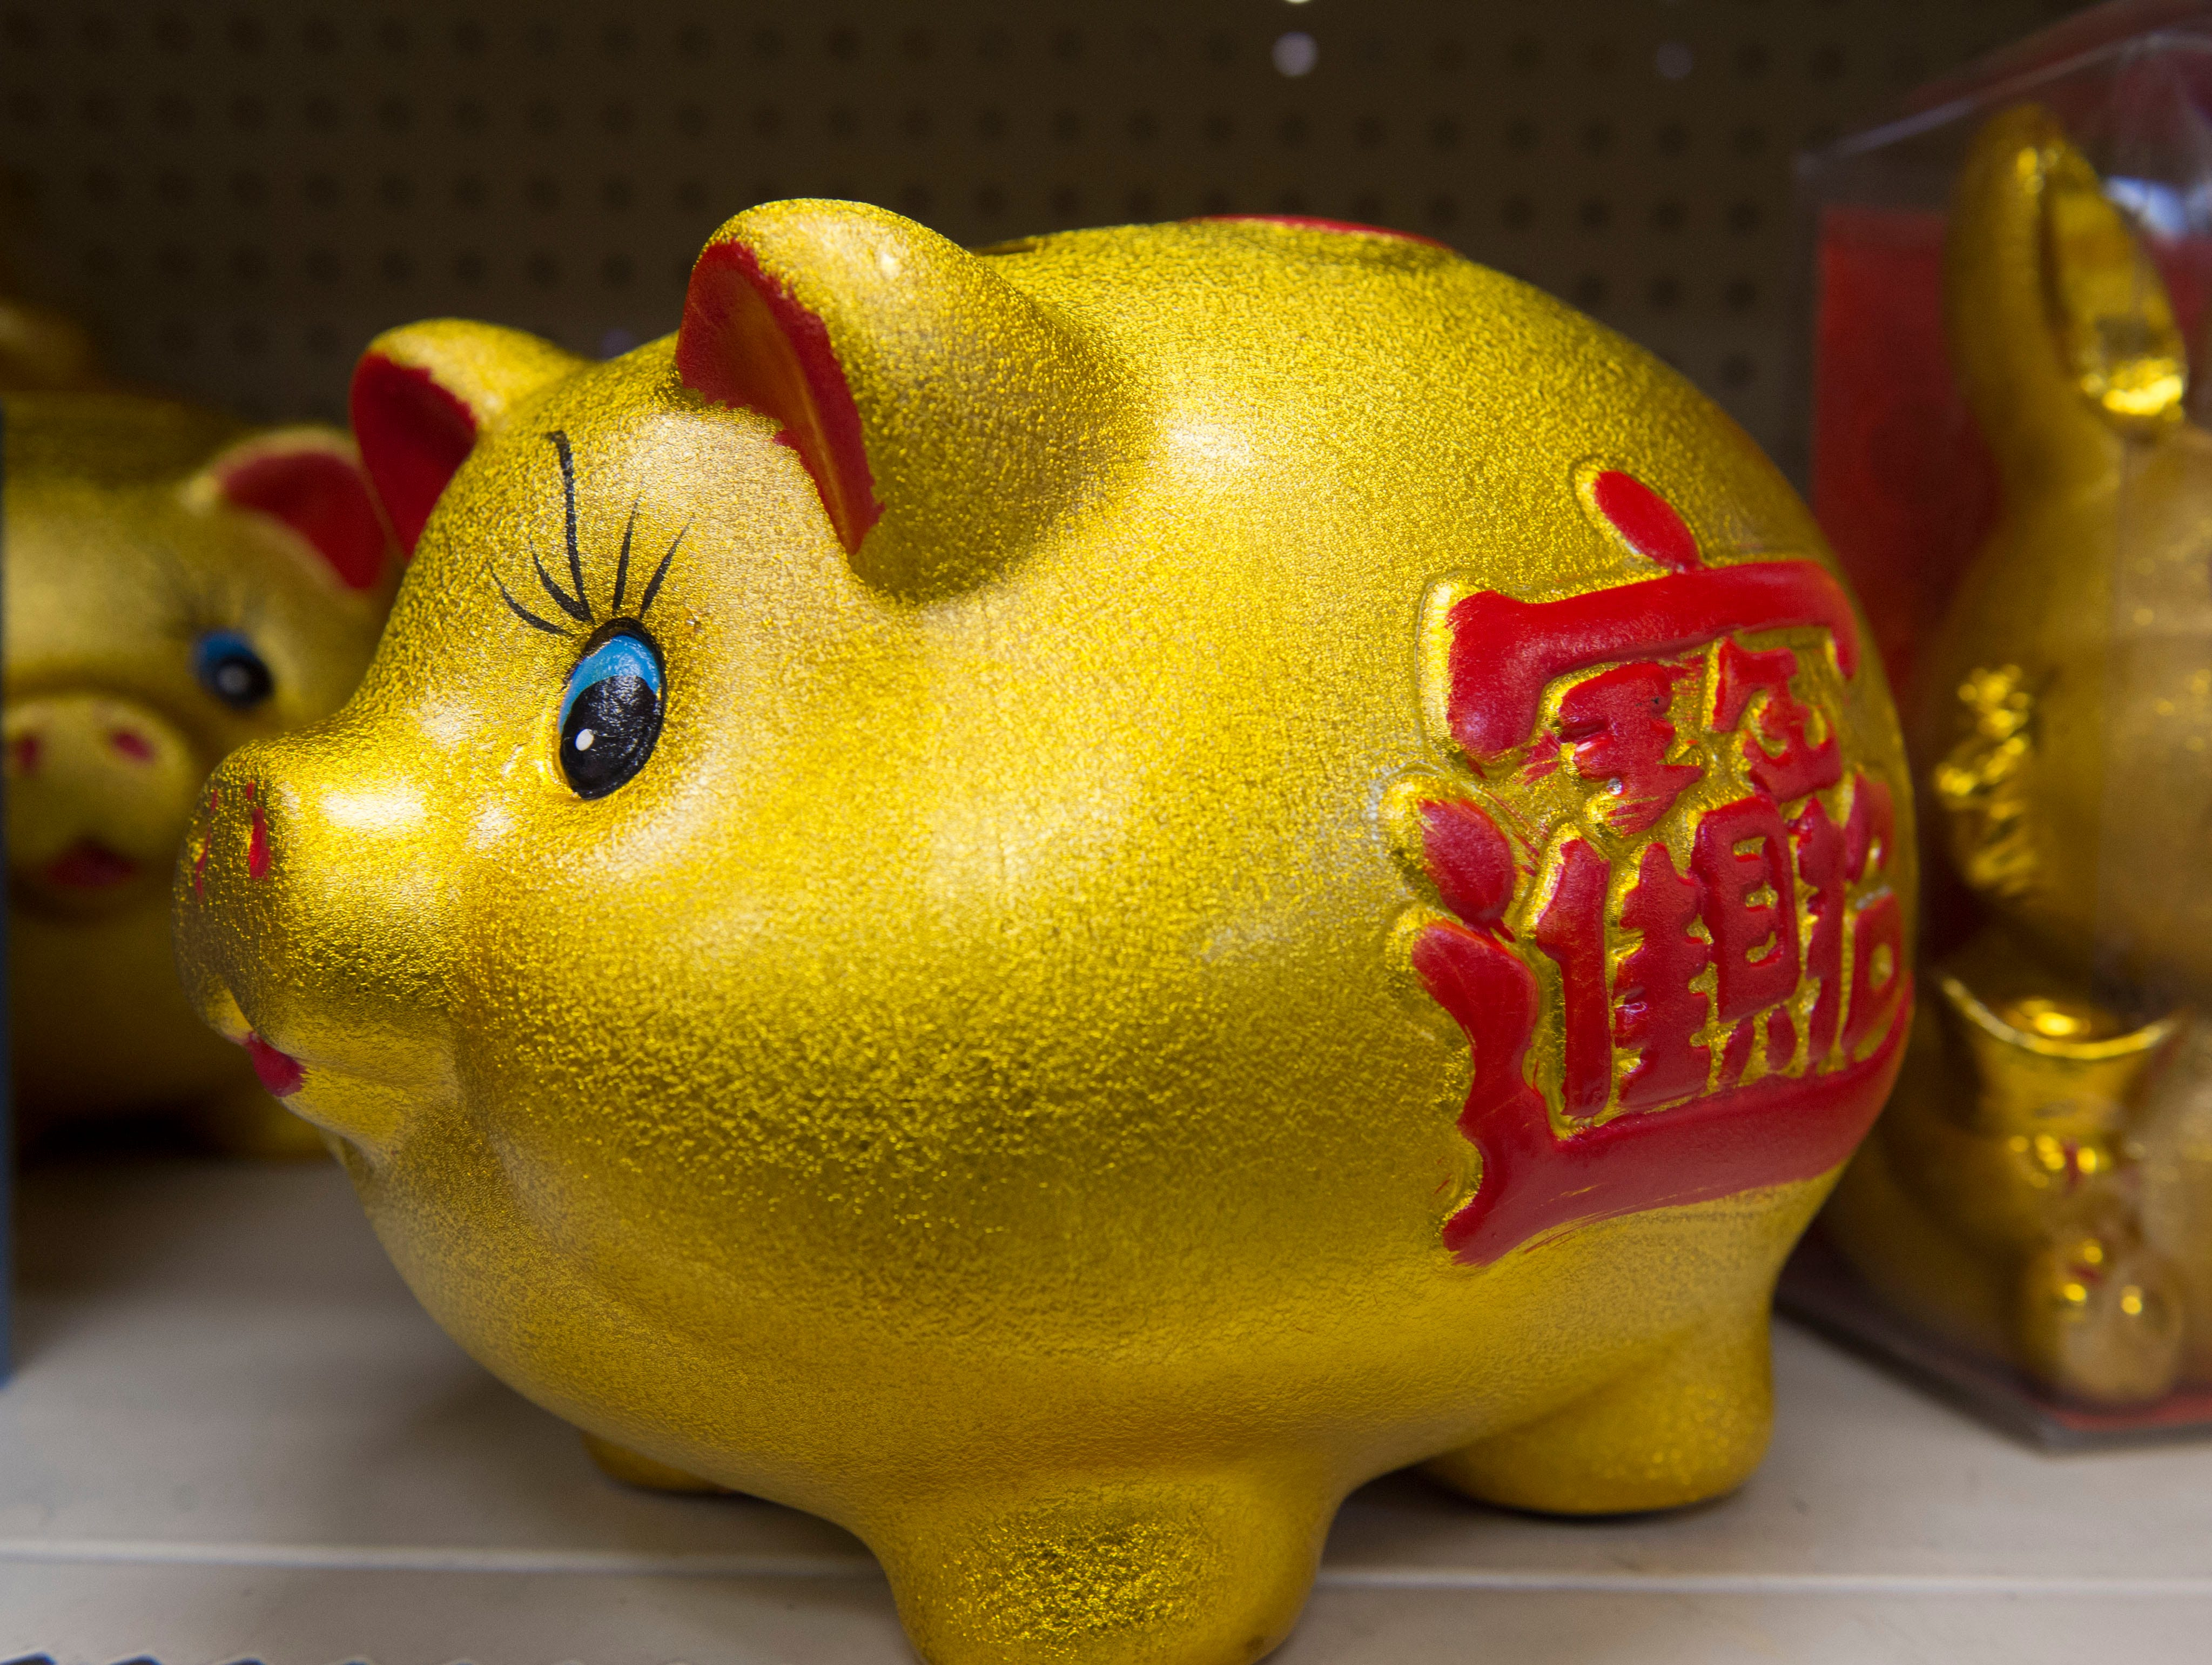 The pig is the twelfth animal symbol in the 12-year cycle of Chinese zodiac, which begins anew on Tuesday, Feb 5. And with 2019 being the year of the pig many decorations for the new year will include the animal as with the piggy banks seen on the shelf of Mr. Chen's restaurant and grocery in Jackson. Monday, Jan. 7, 2019.